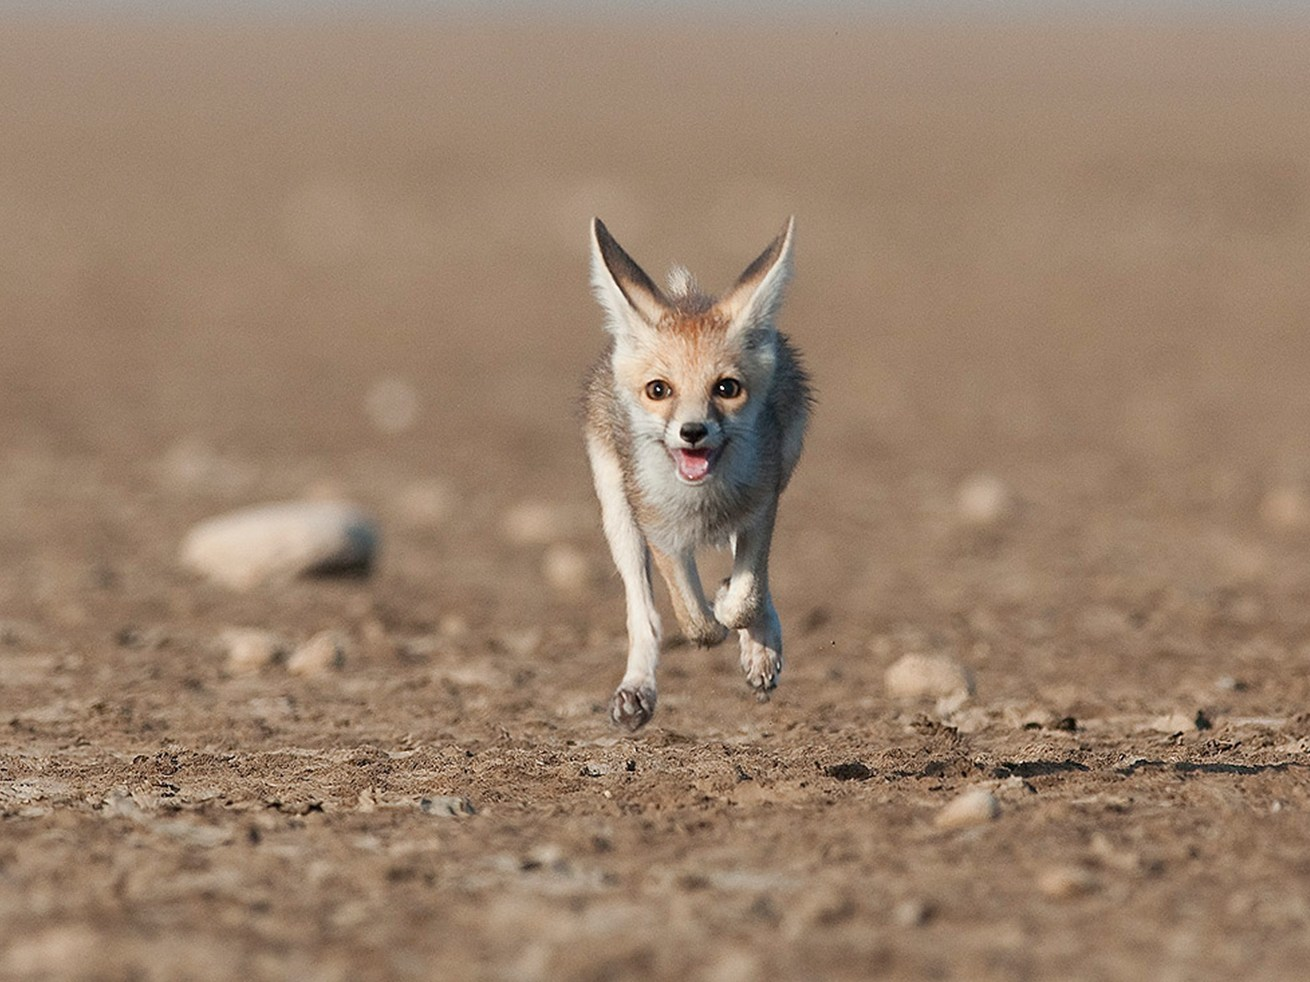 White-footed foxes are agile hunters, capable of running quite fast. They communicate using facial expressions, small sounds, and scent marking.